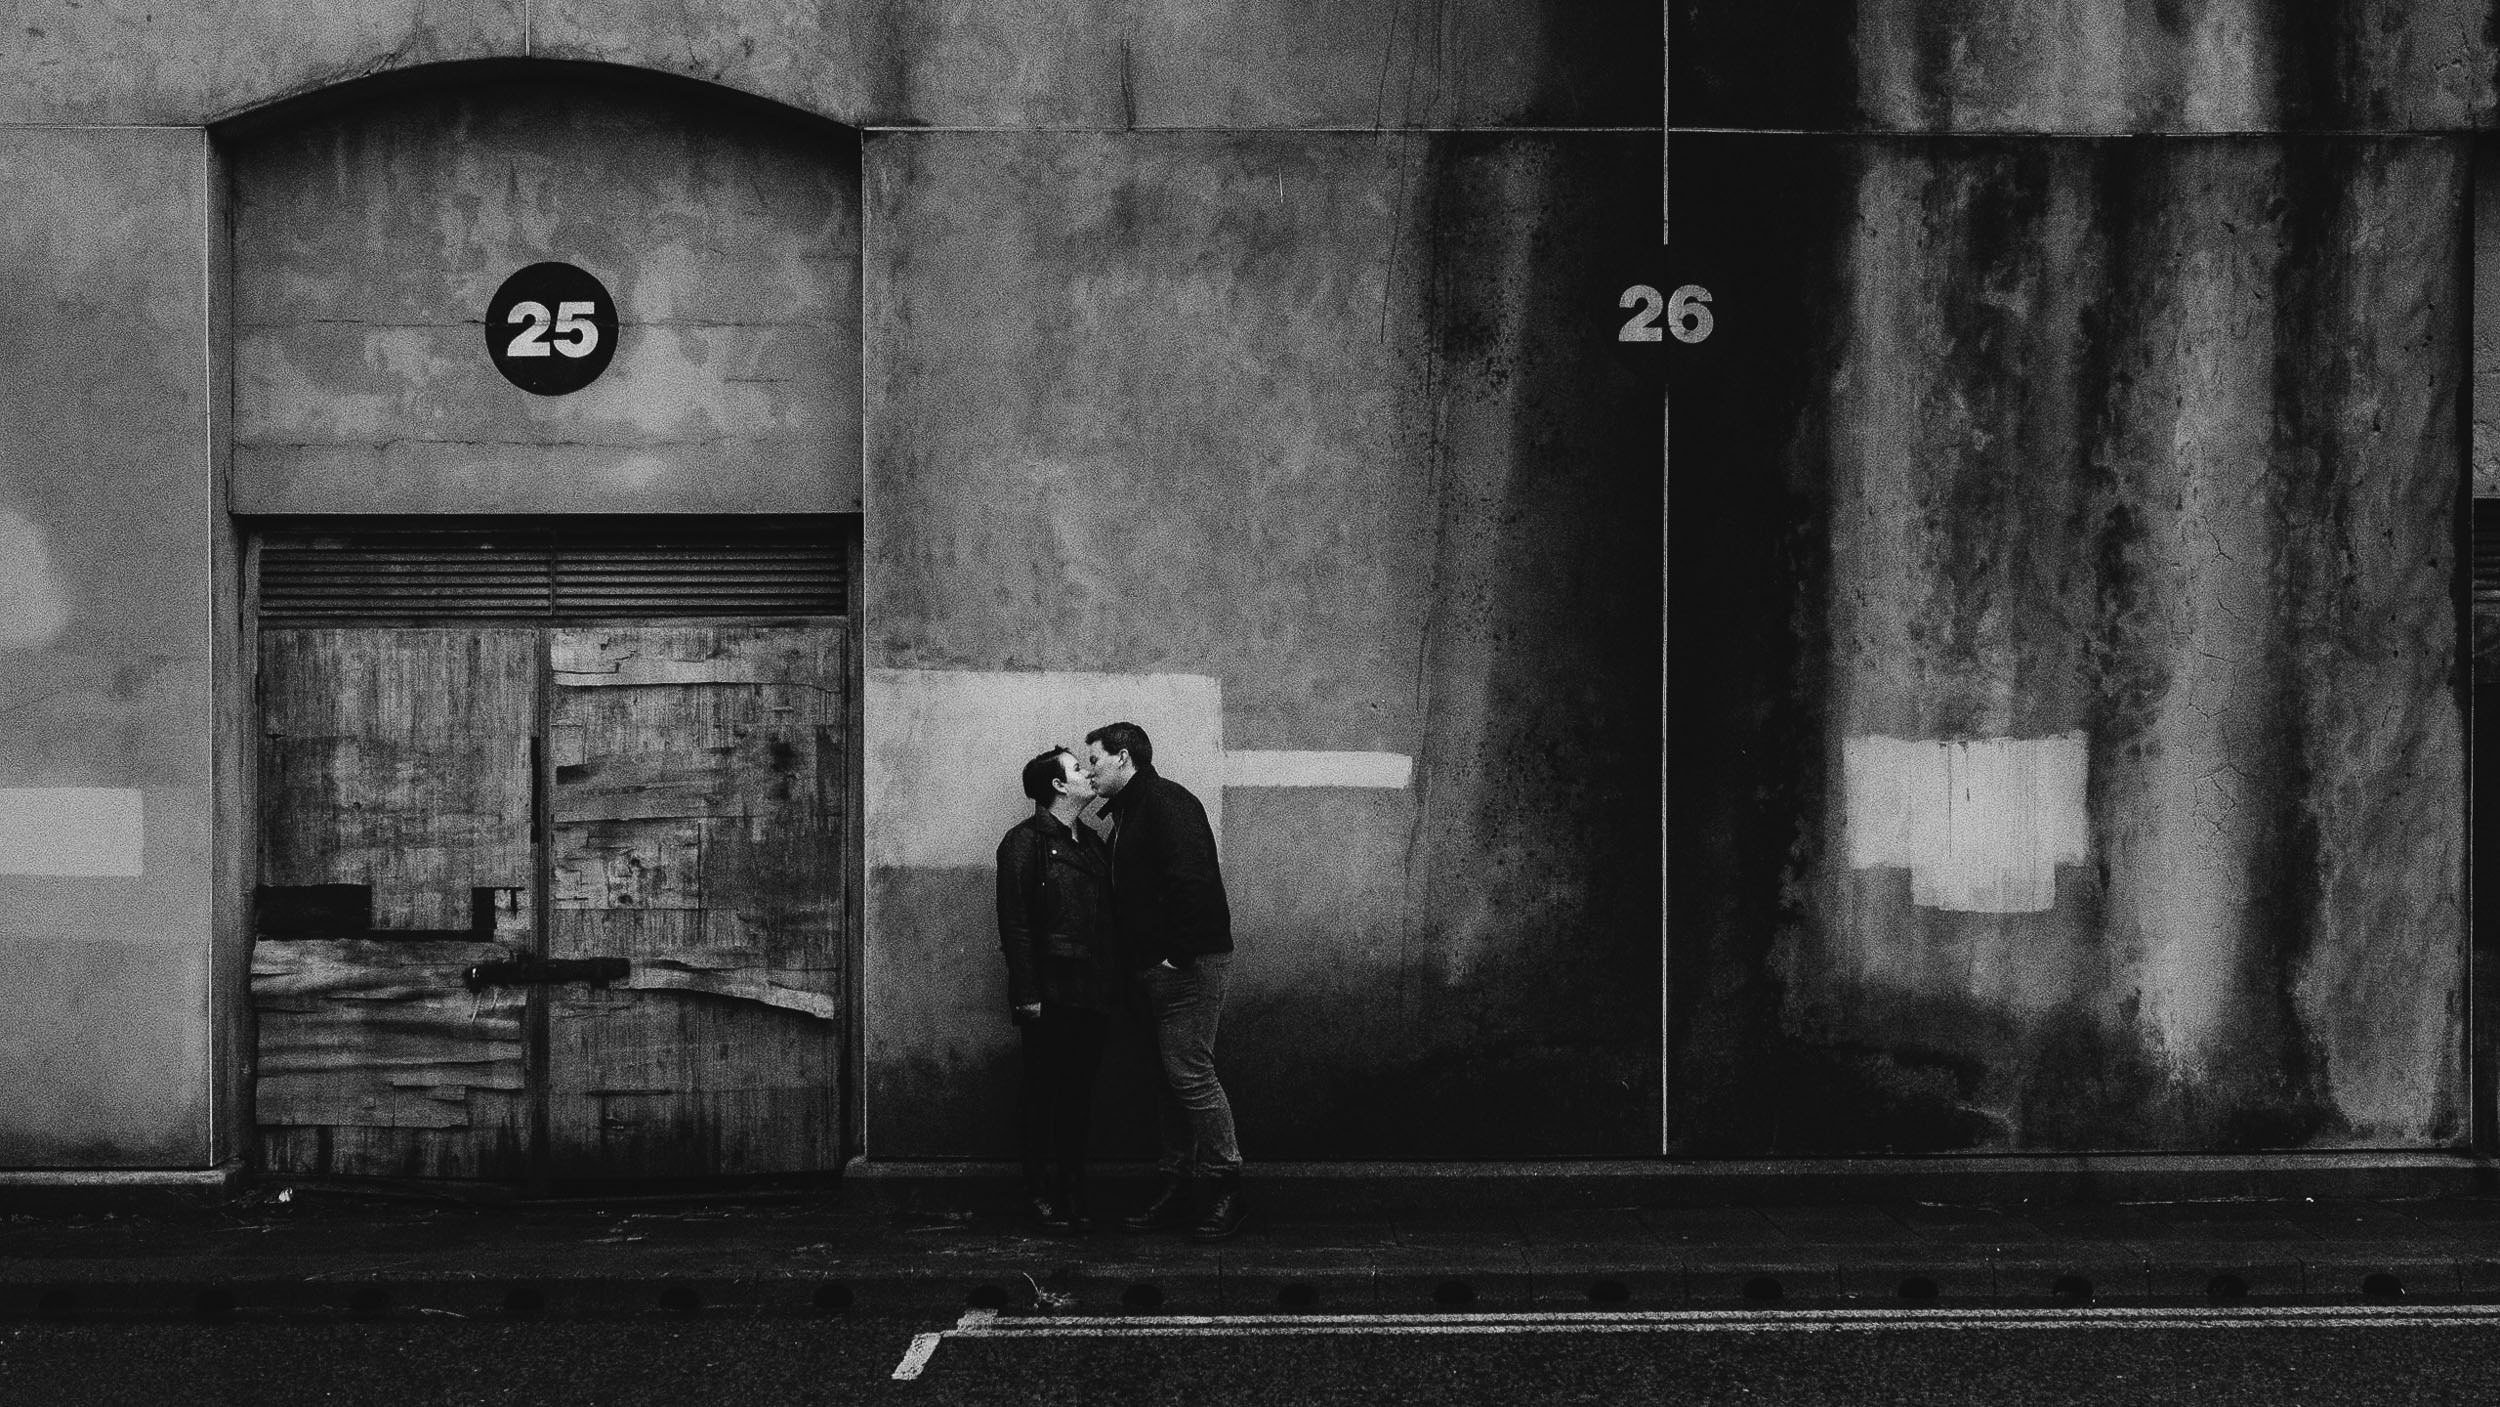 A black and white photo of an engaged couple embracing in front of a wall with peeling paint